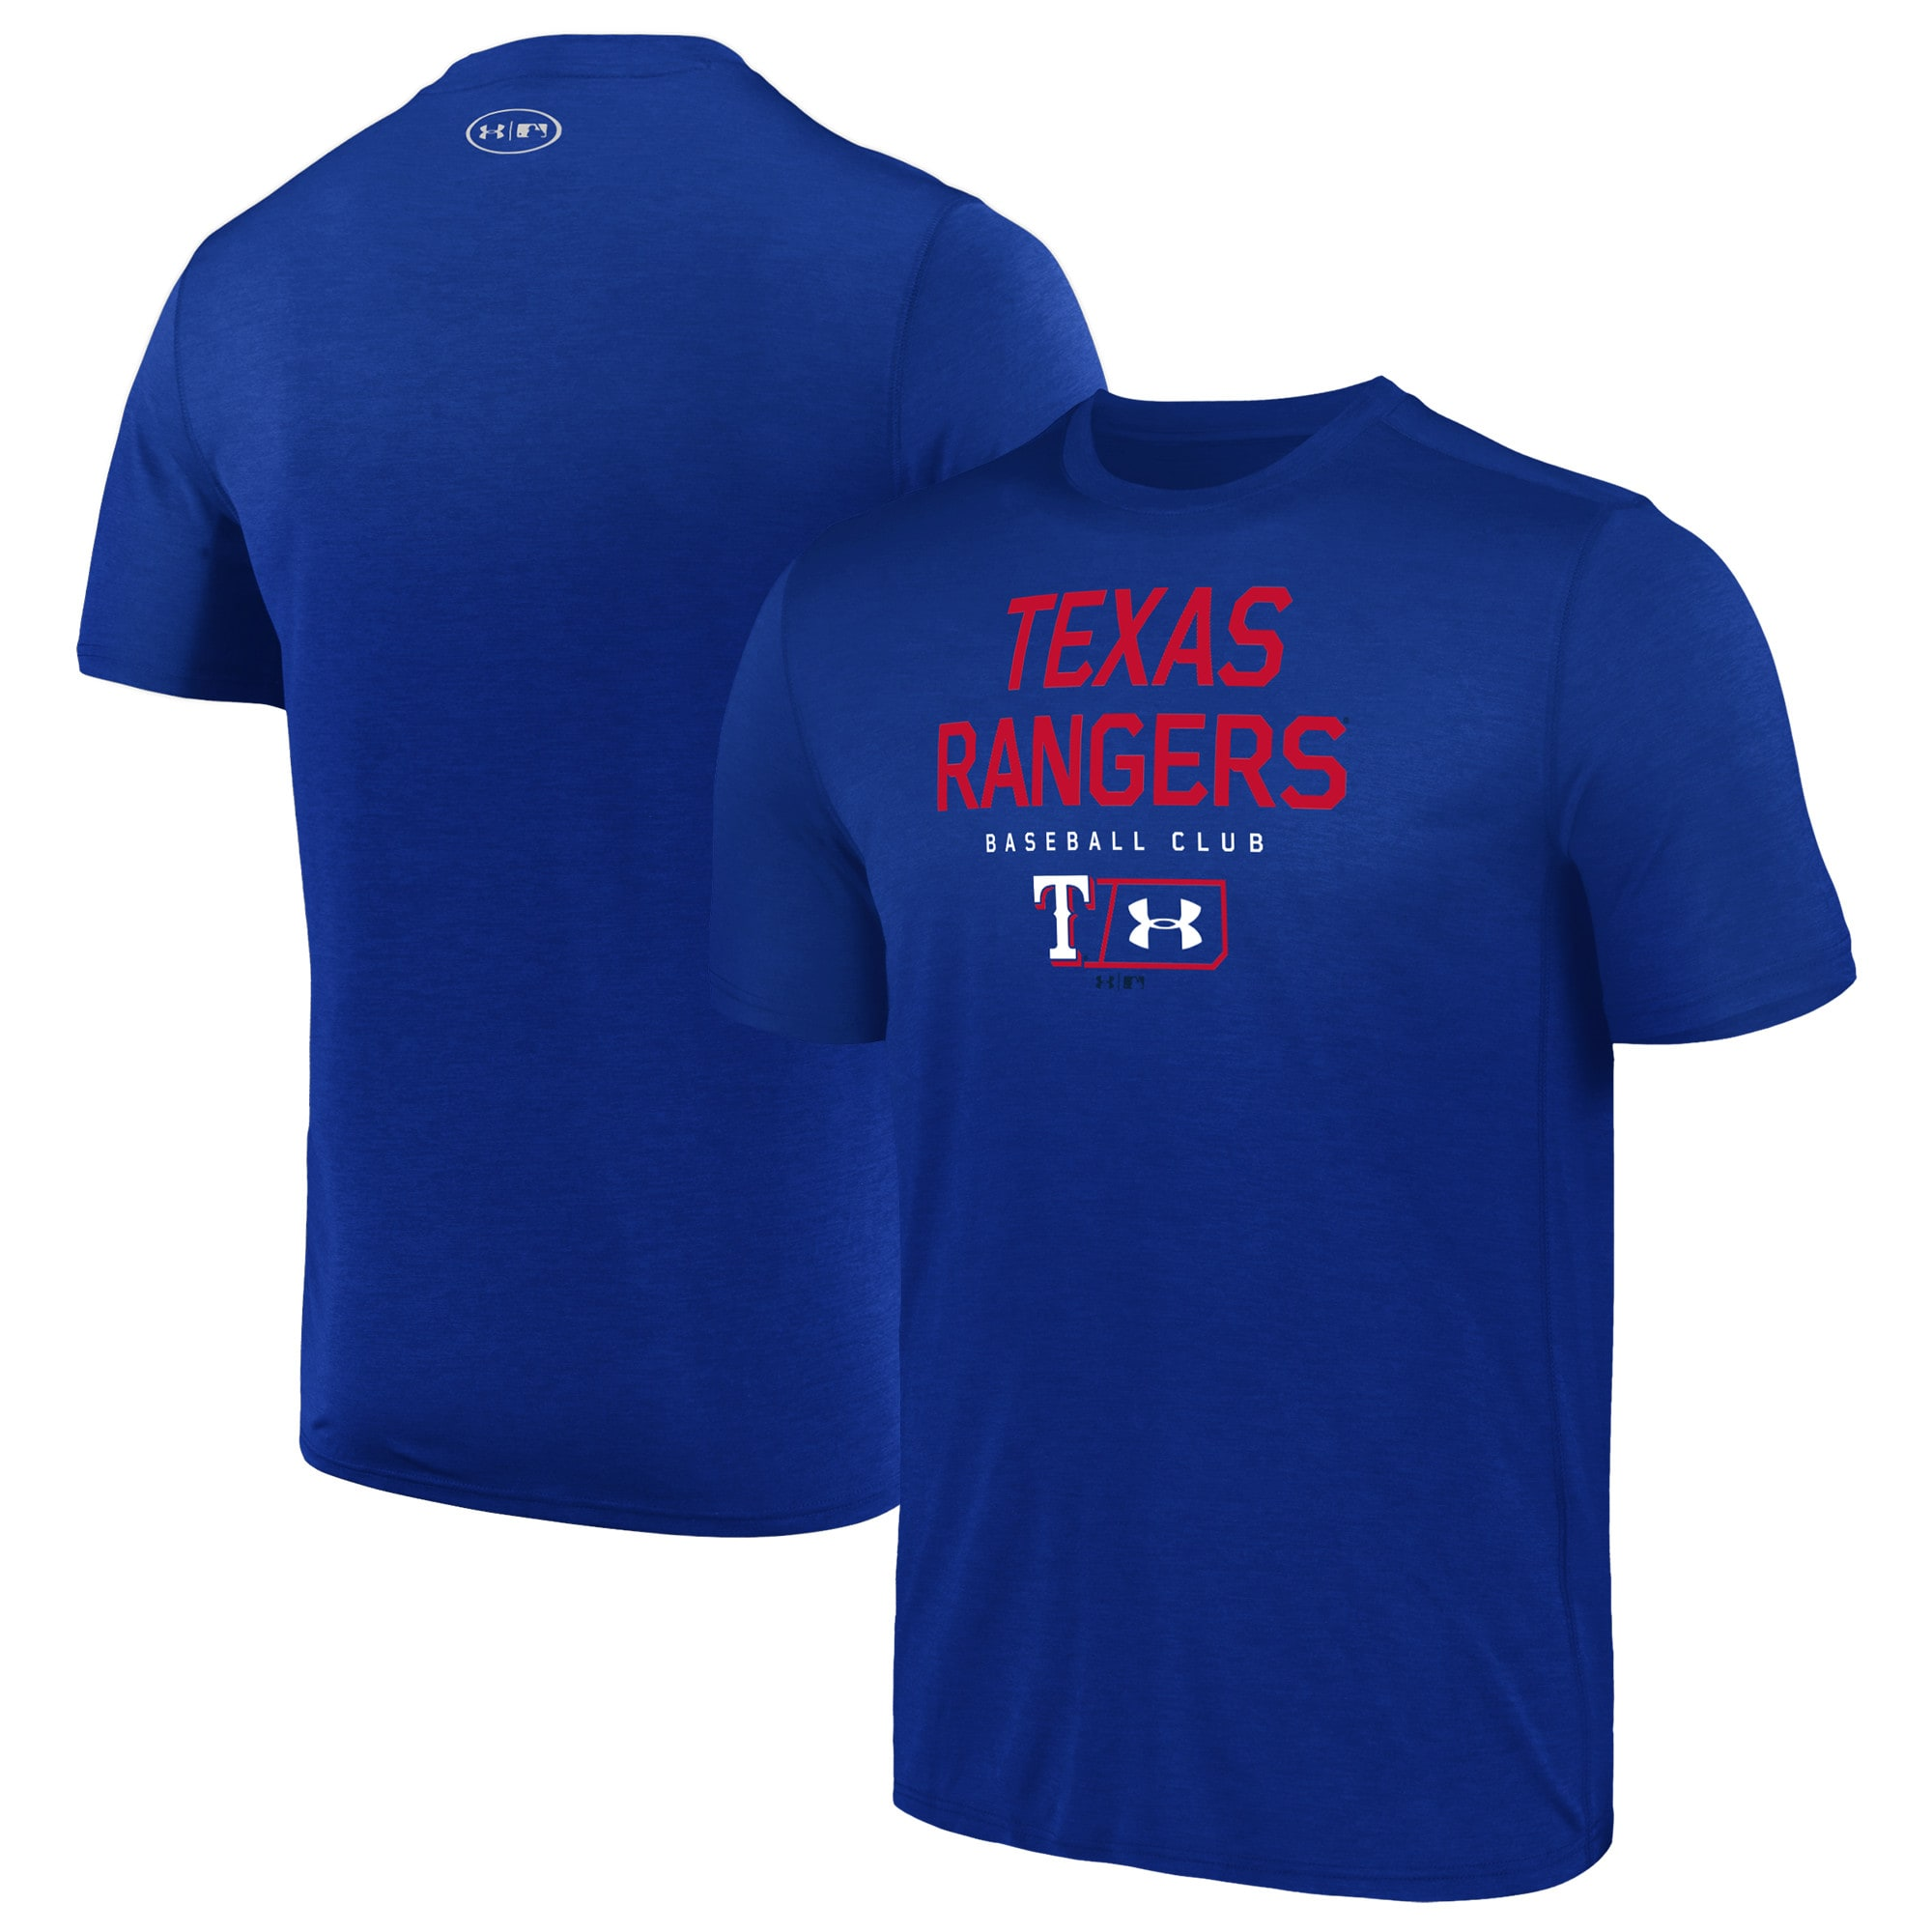 Texas Rangers Under Armour City Proud Performance T-Shirt - Royal